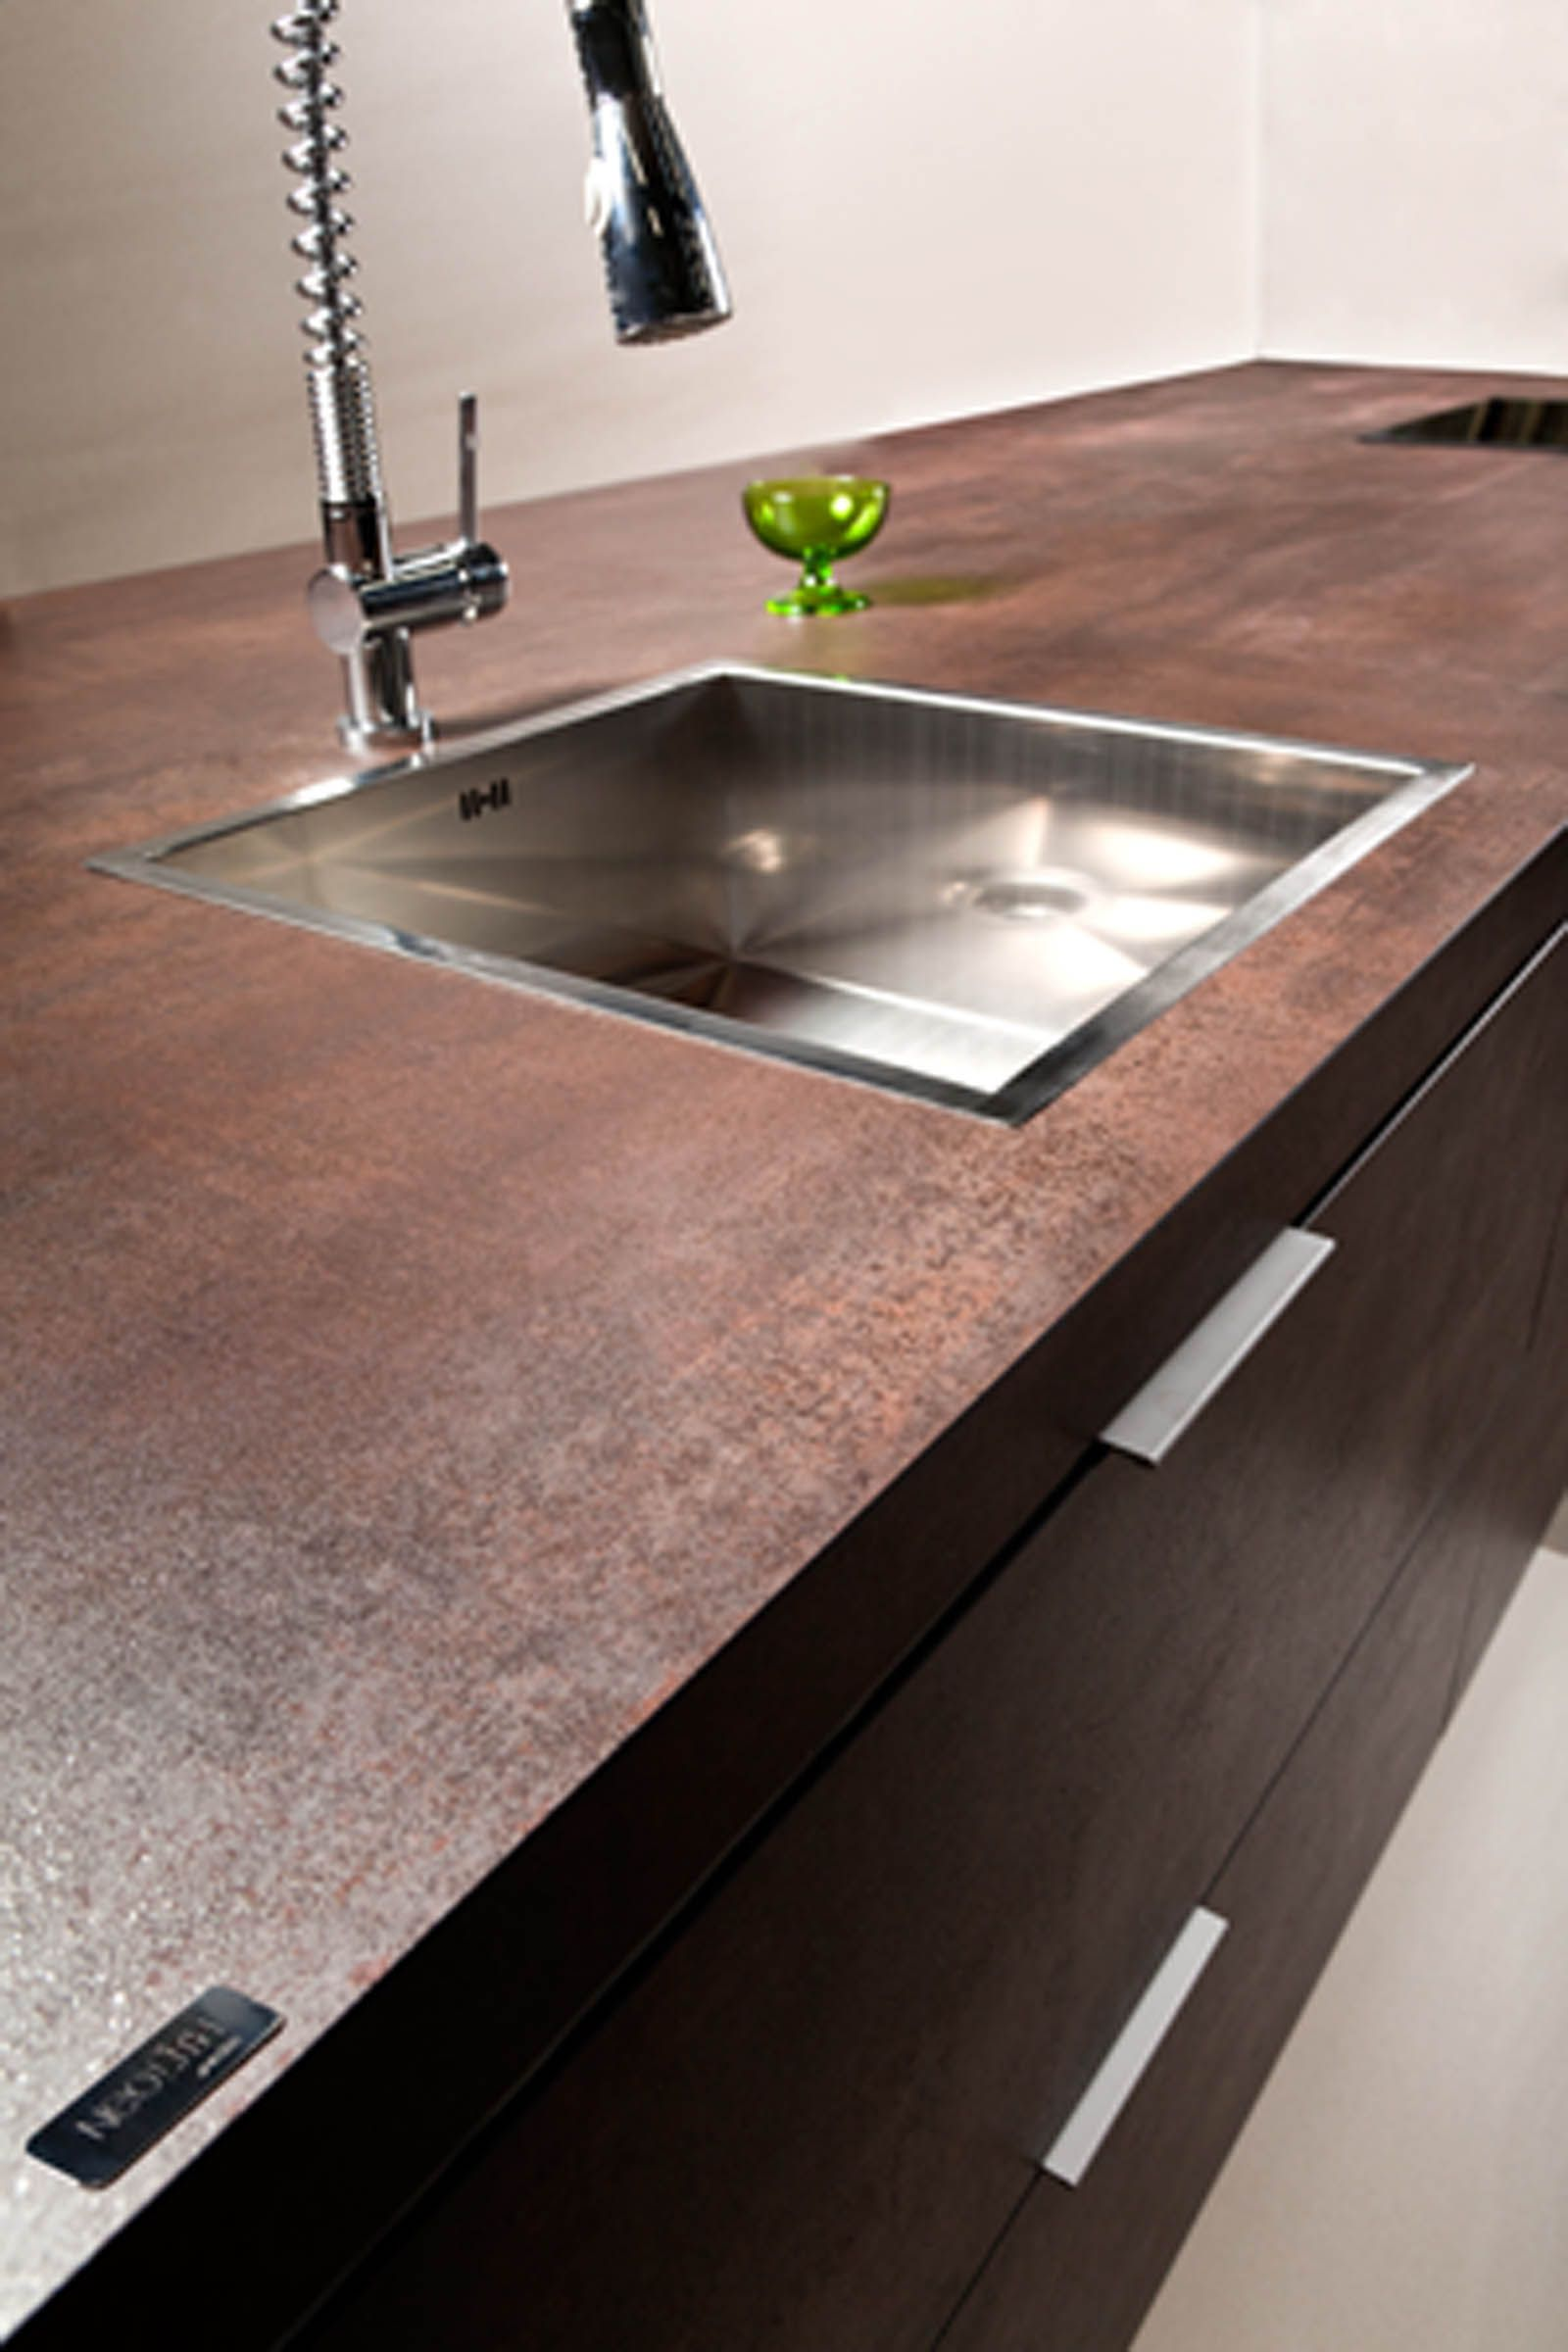 Copper Laminate Countertops Neolith Countertop Iron Corten Model 100 Natural